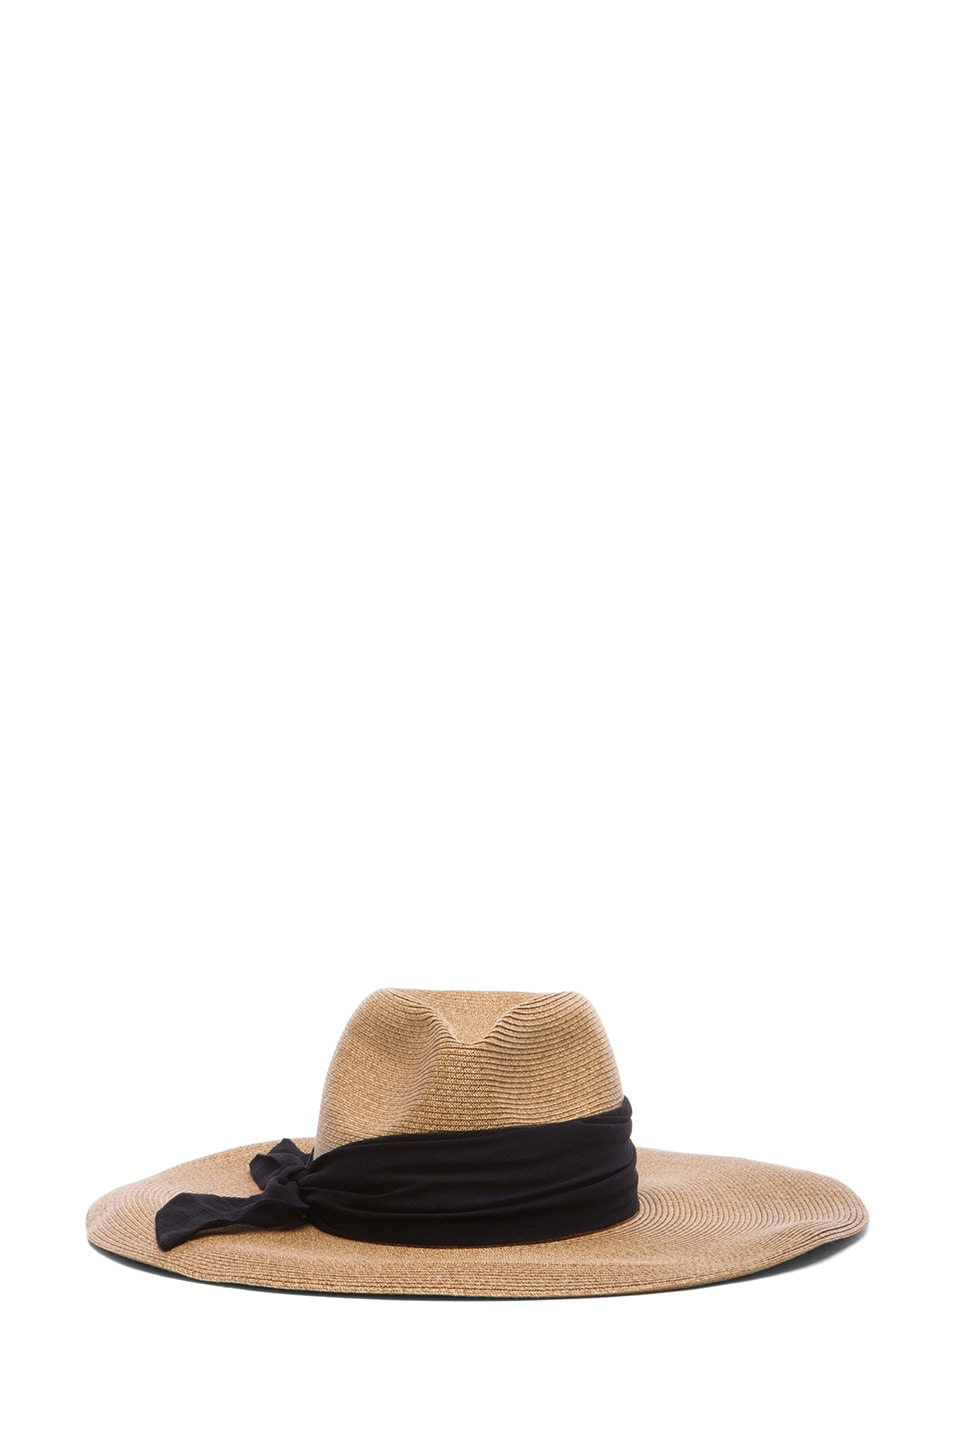 Image 1 of Eugenia Kim Cassidy Sun Hat in Camel & Black